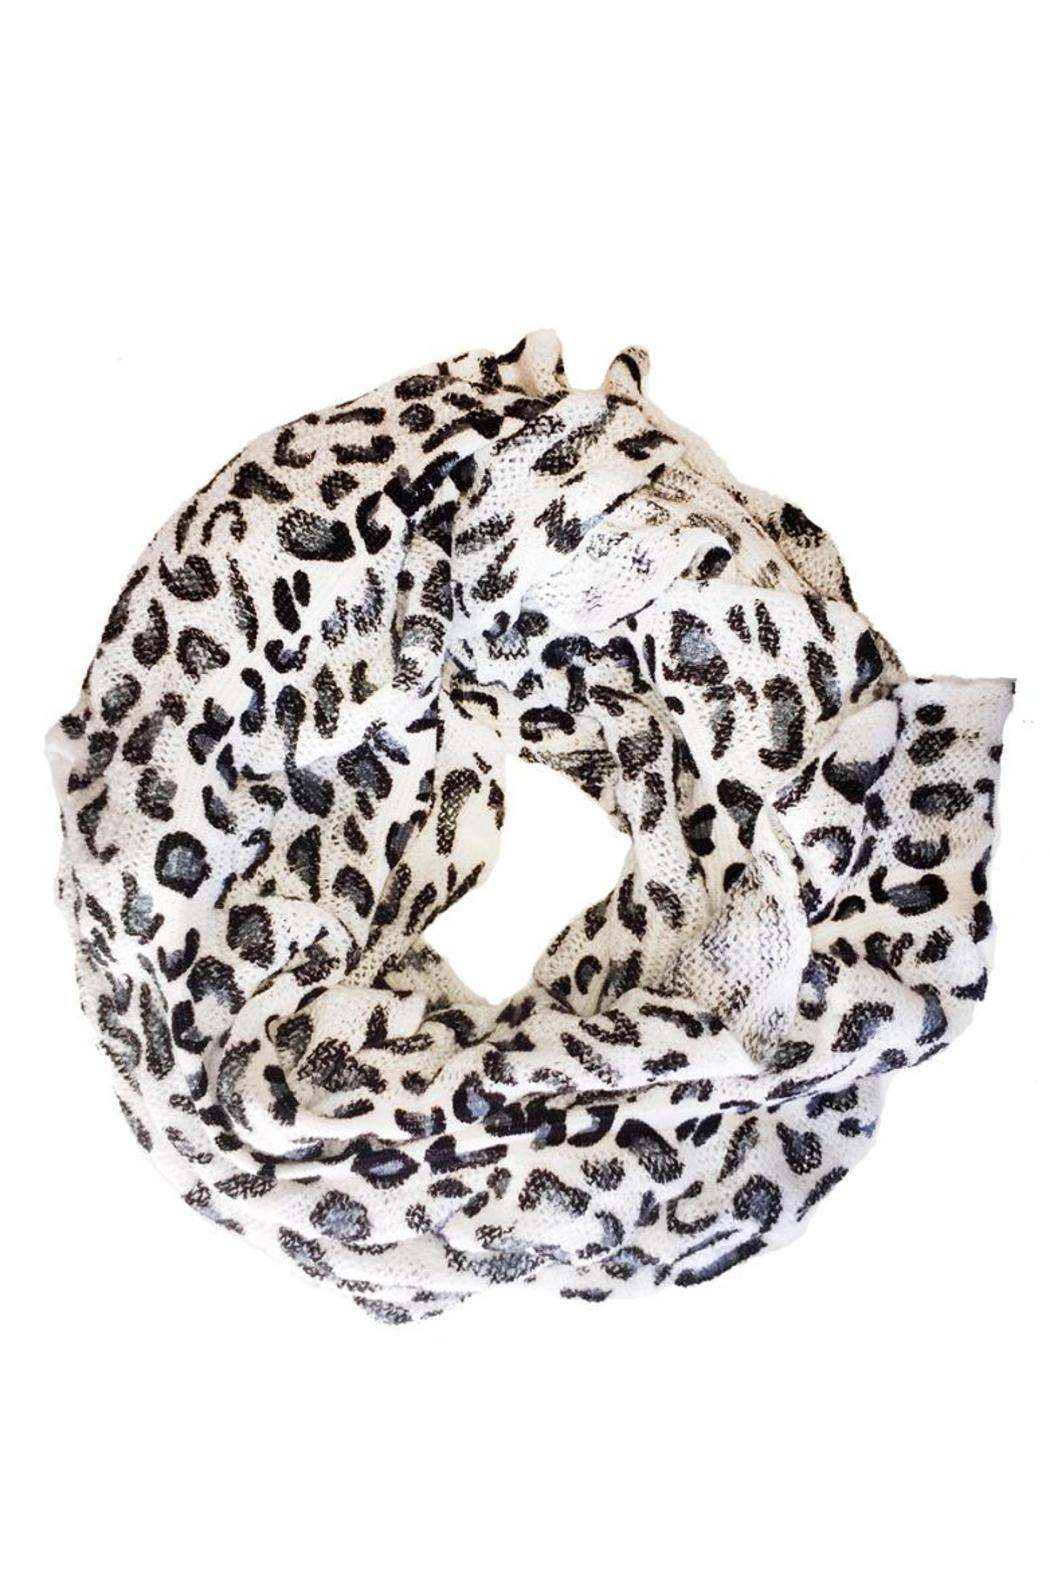 Leopard Infinity Scarf from Las Vegas by Glam Squad Shop — Shoptiques 2b0bb71a191c